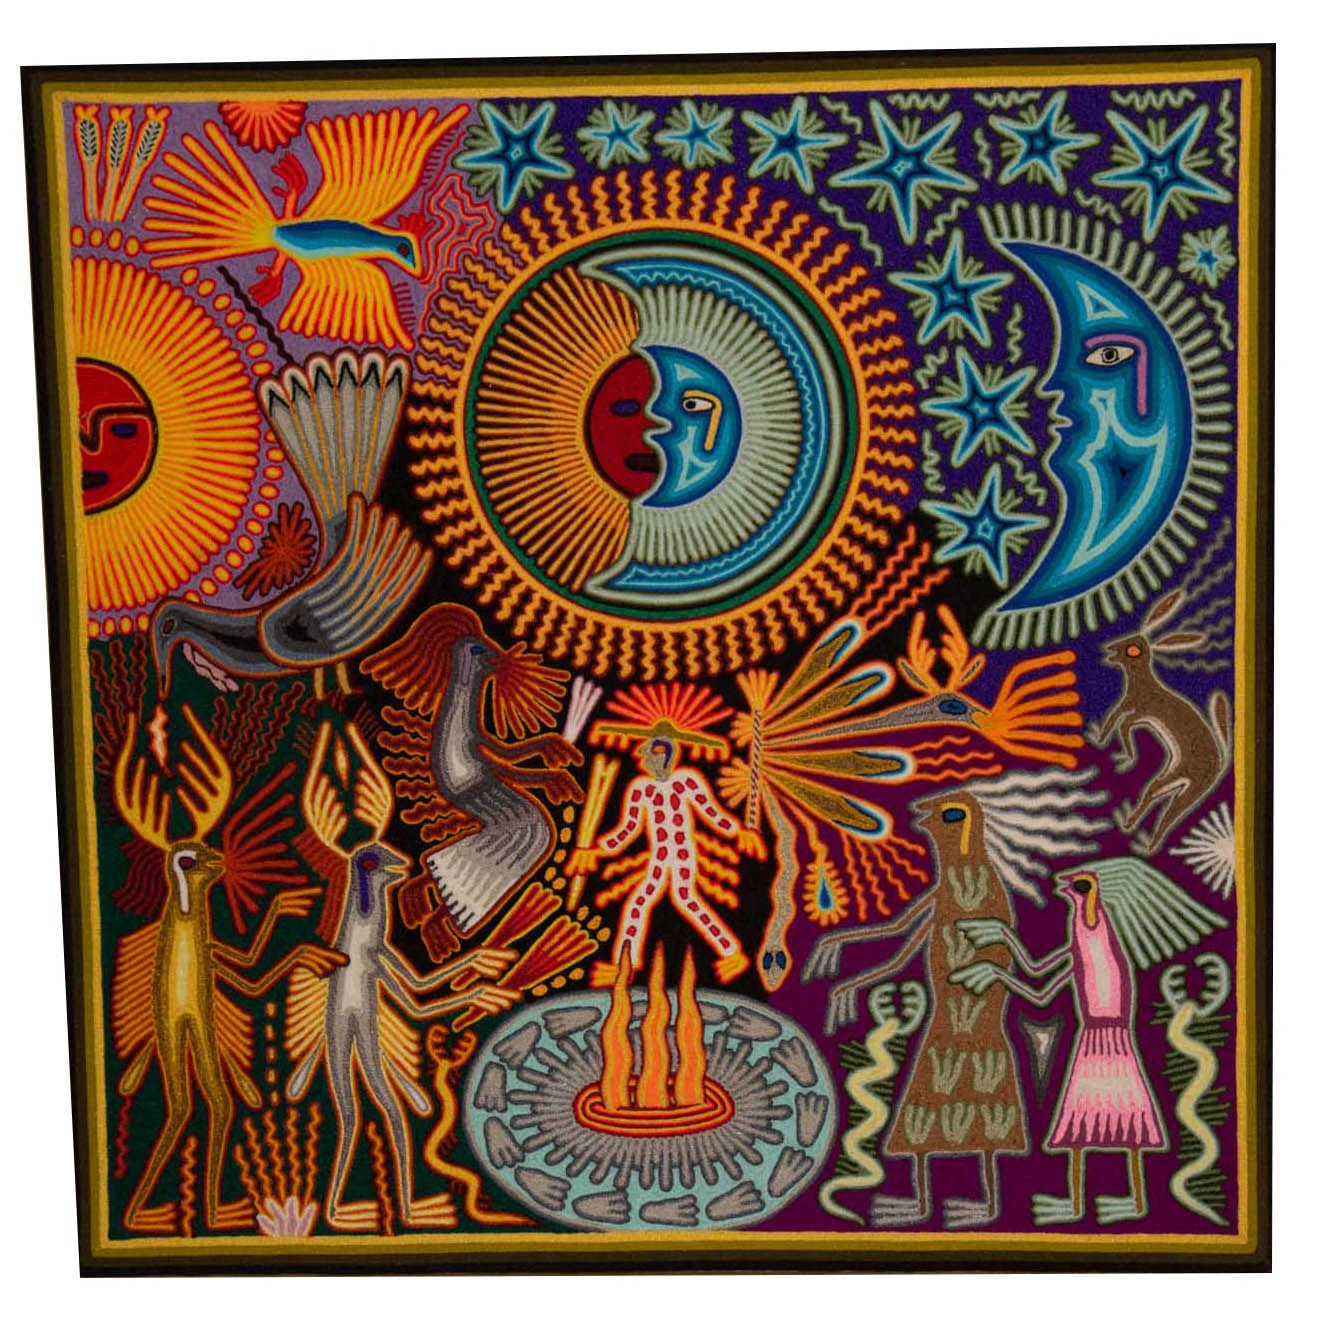 Stunning traditional Huichol art yarn painting featuring the sun and moon. Buy fair trade Mexican textiles & support local Huicol communities.